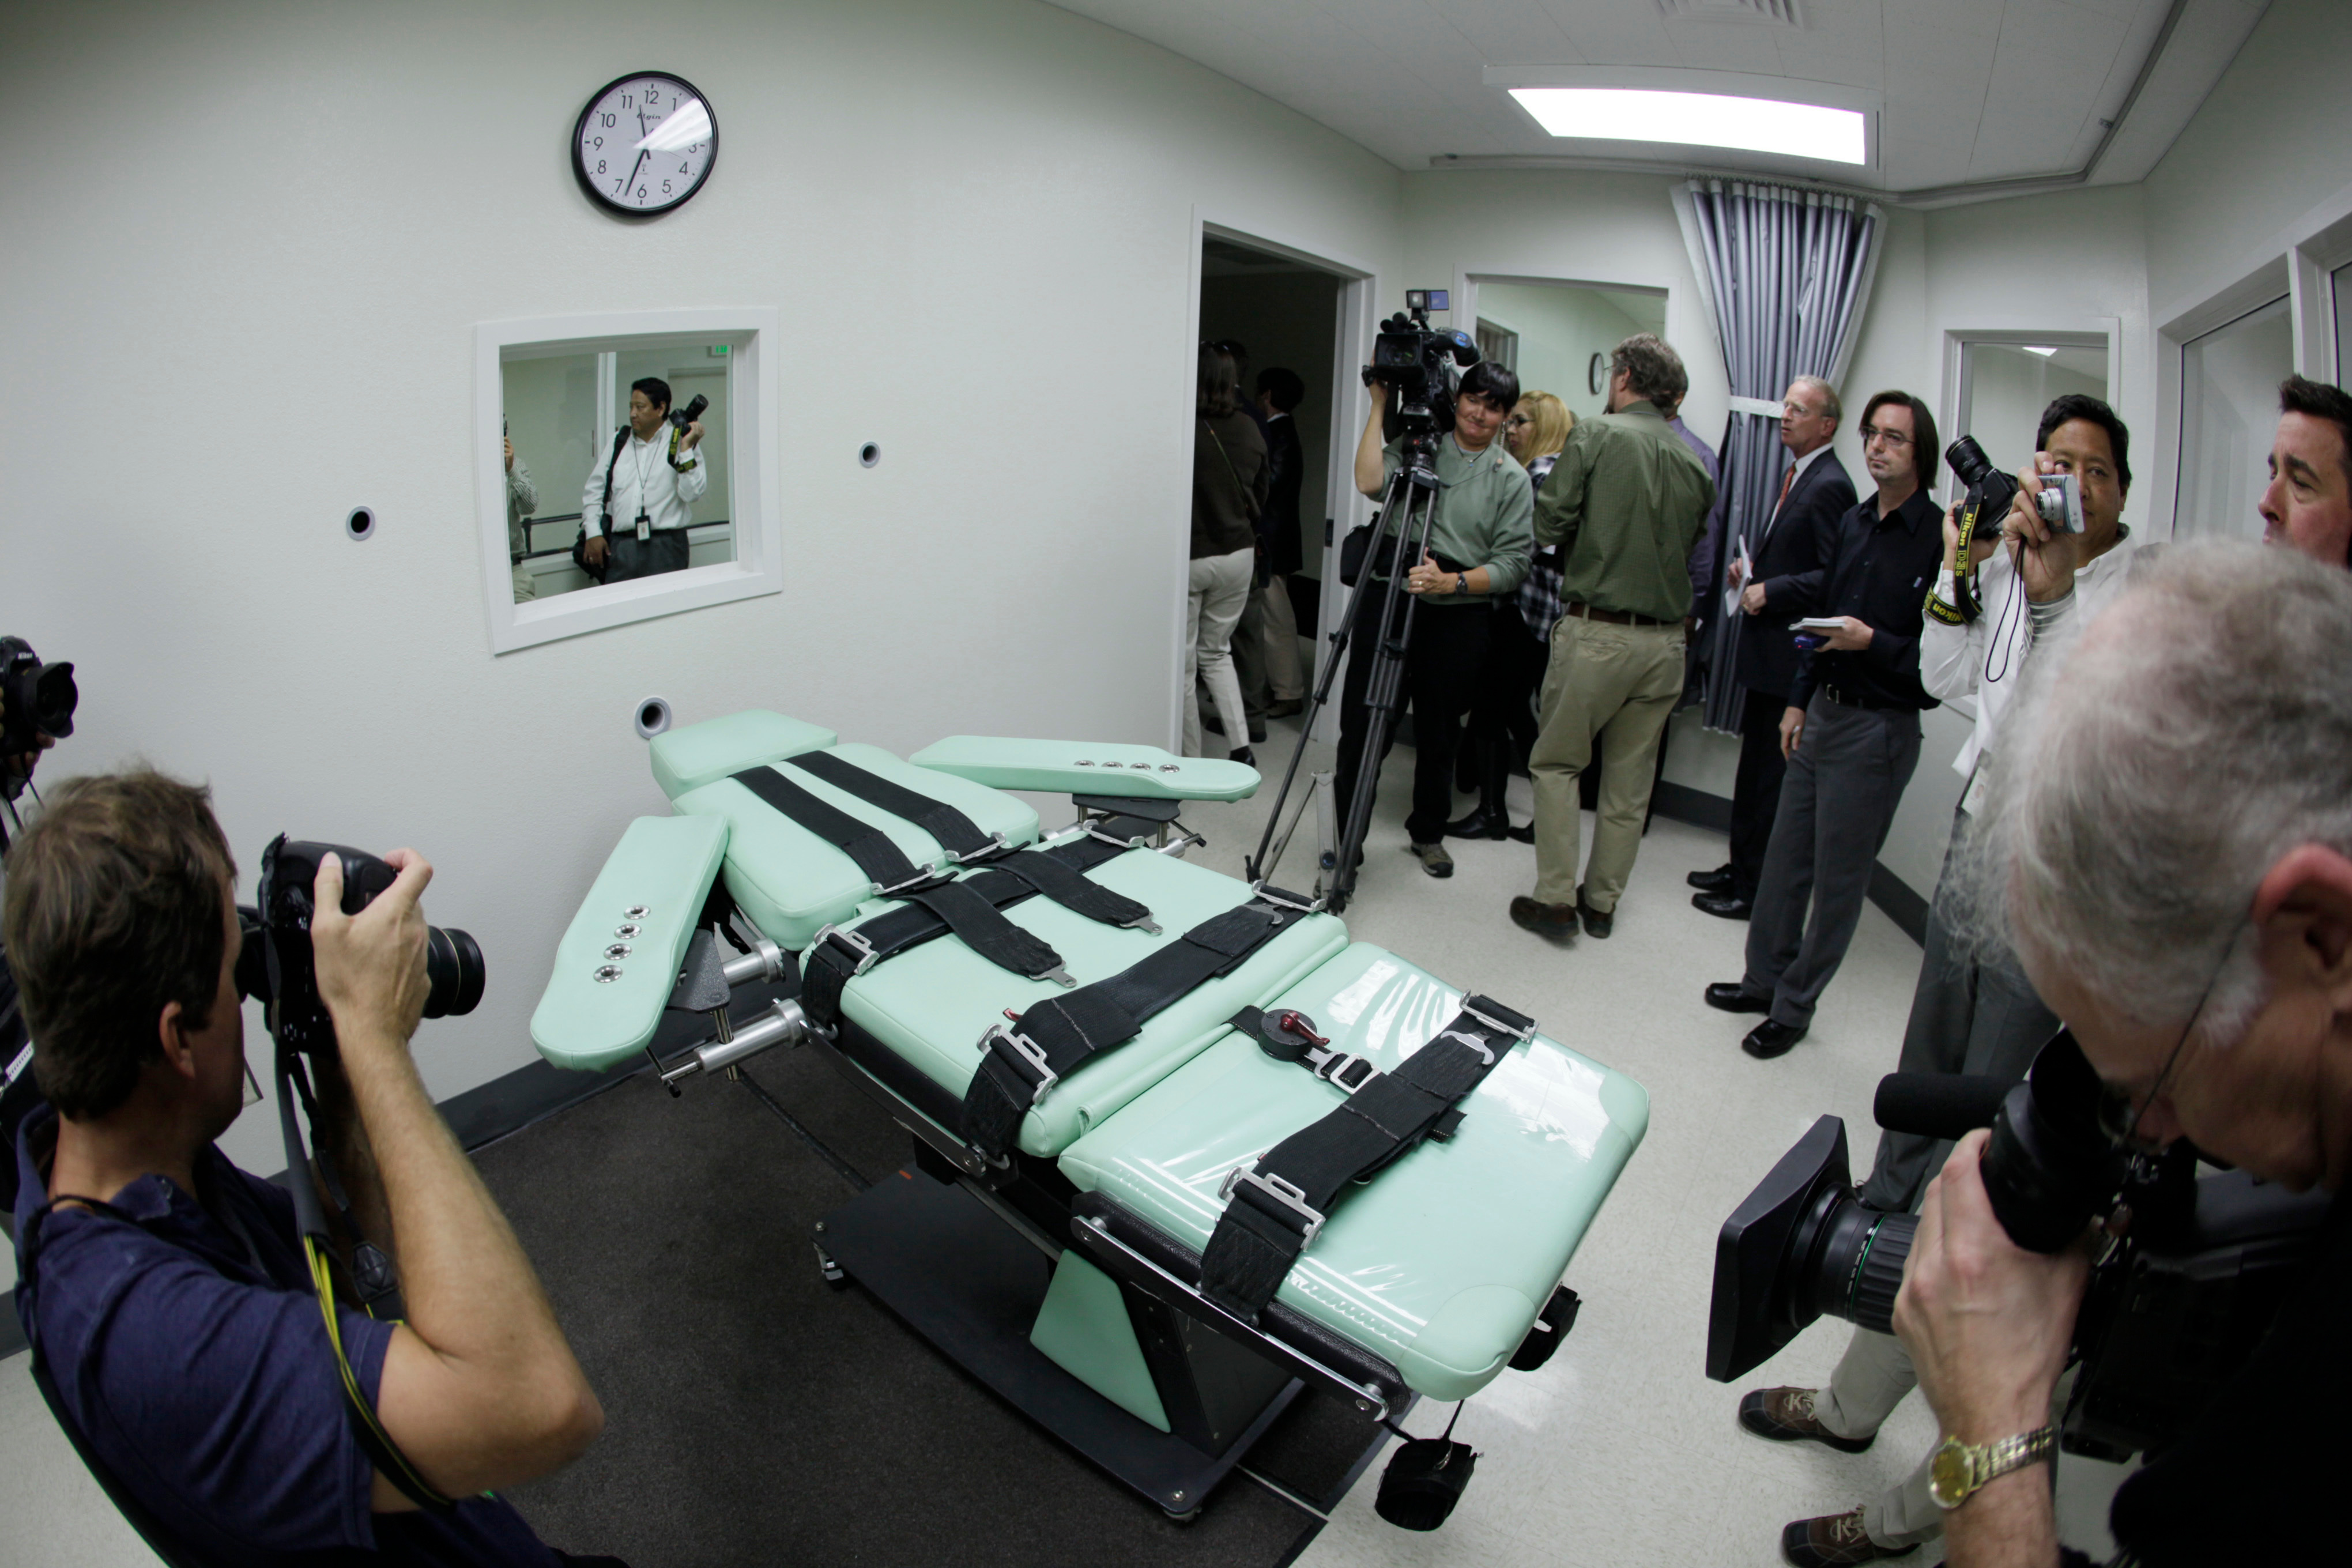 california has over 700 people on death row and executions could